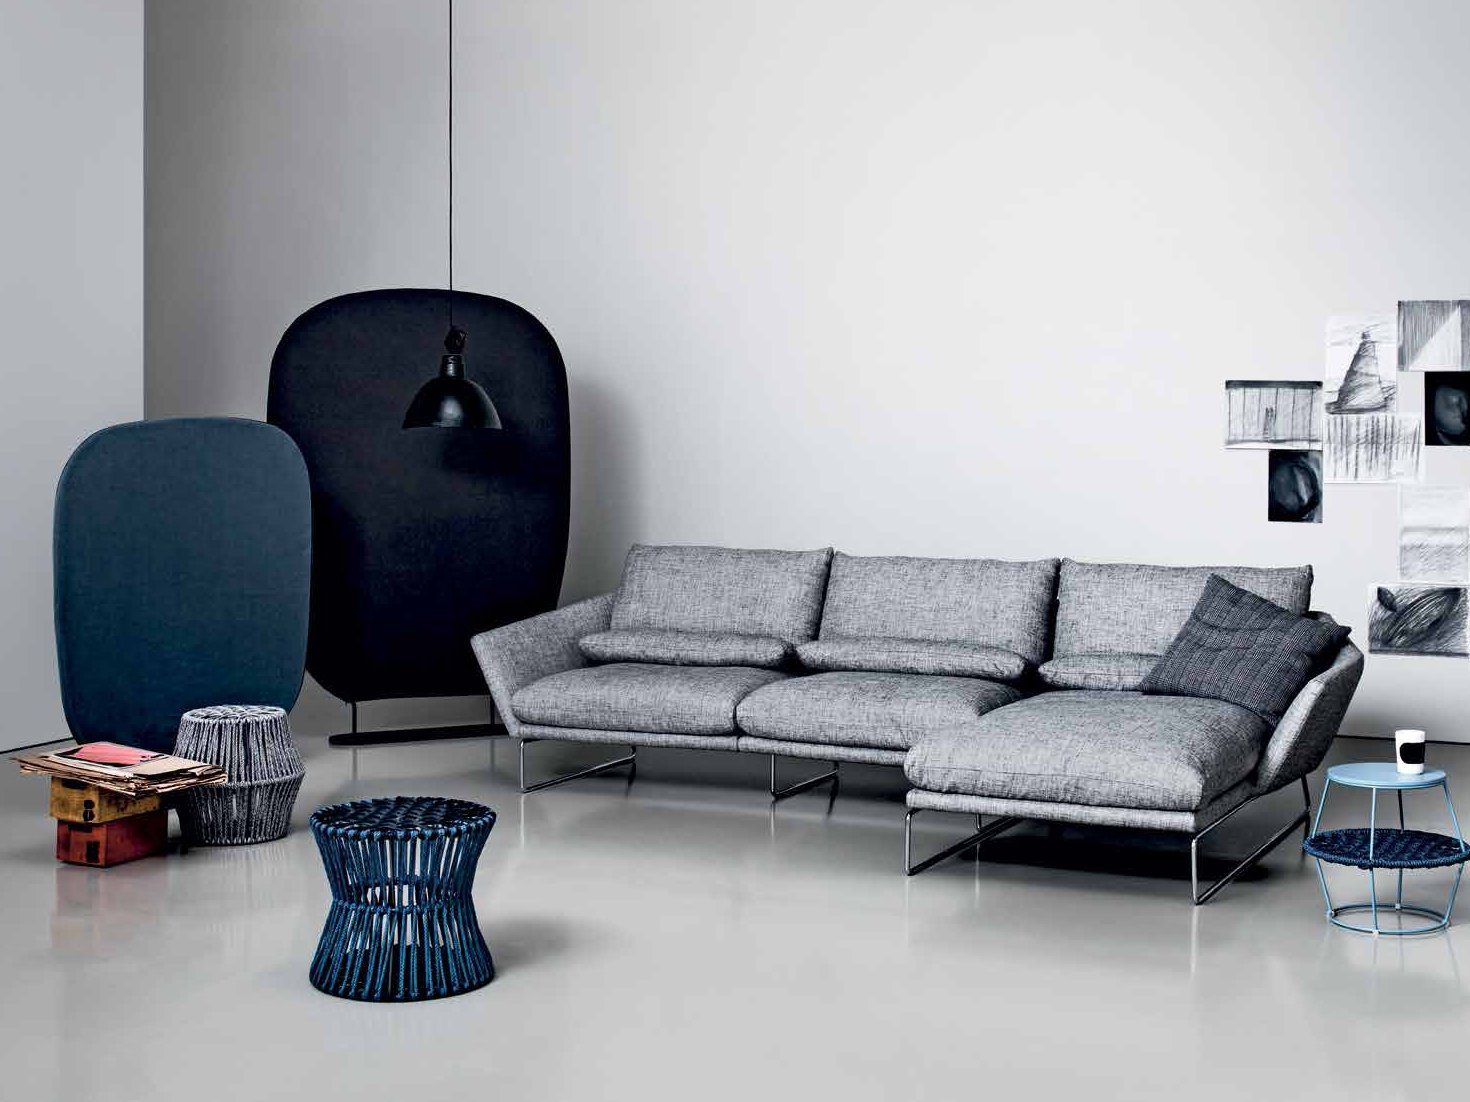 New york soft sofa with chaise longue by saba italia - Sofas con chaise longue ...